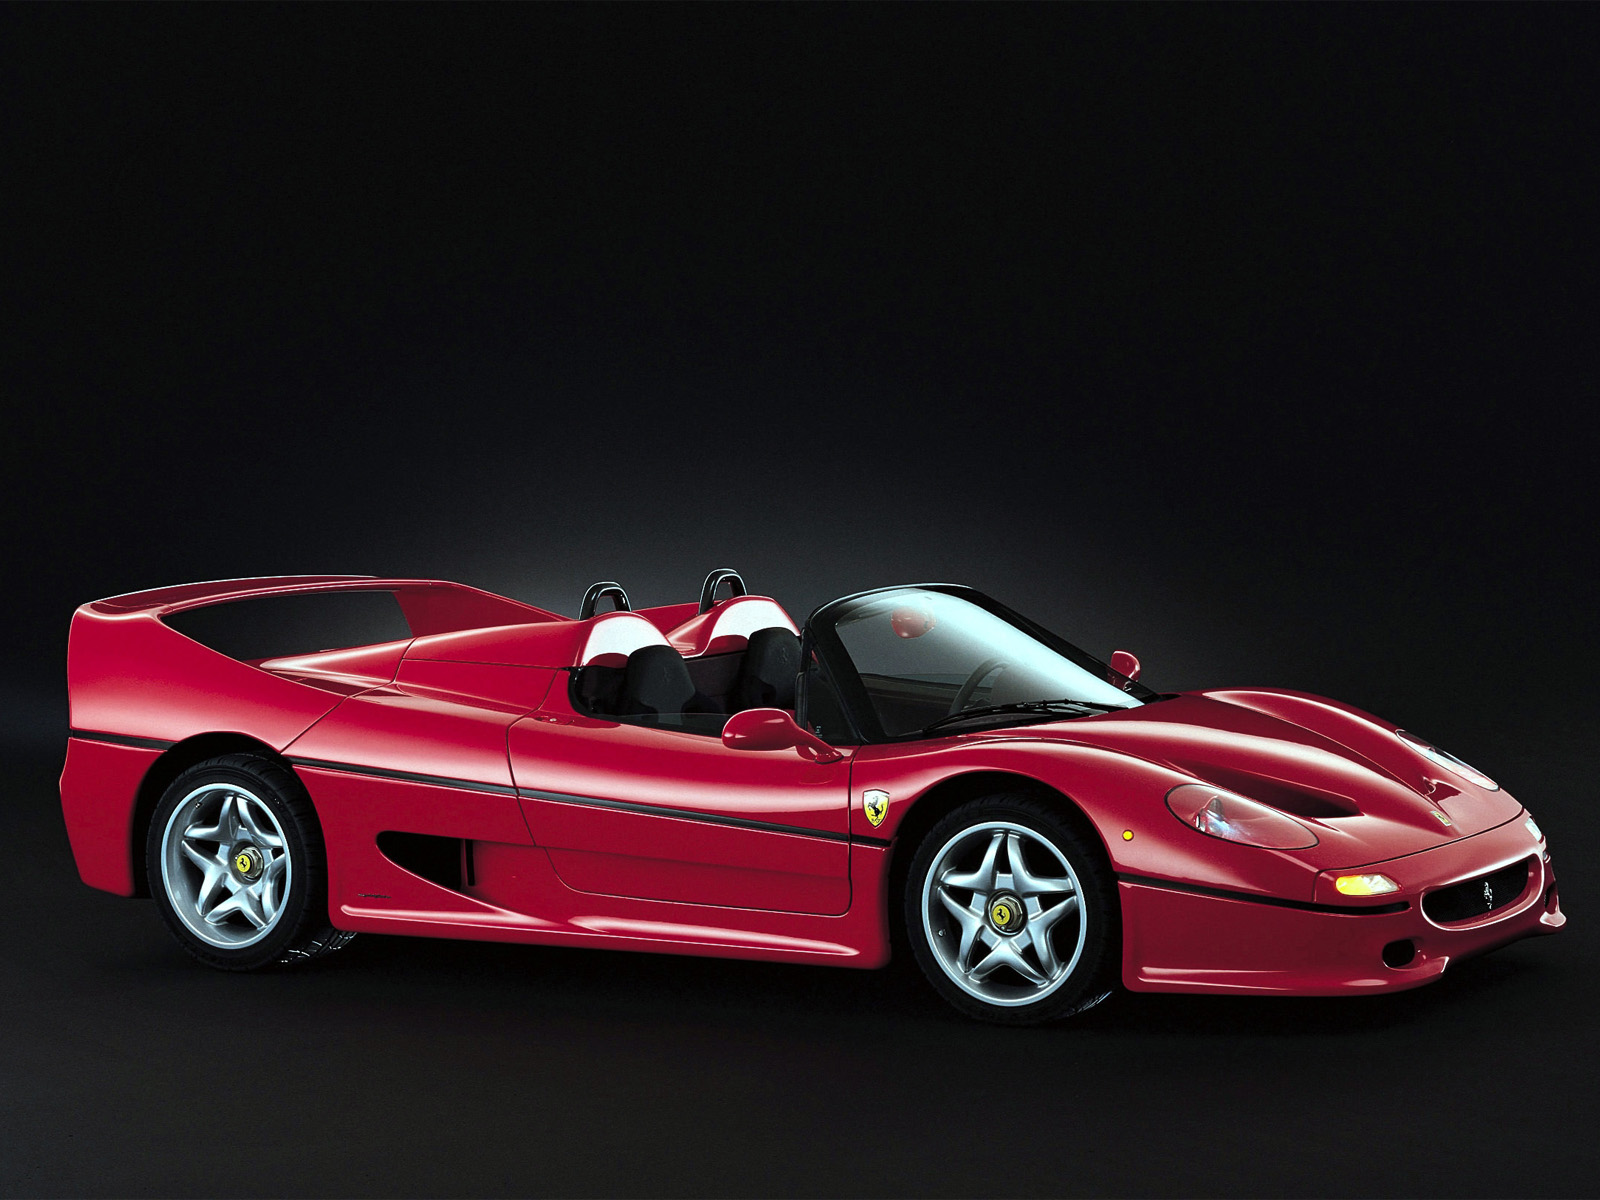 ferrari f50 wallpaper dark – 1600 x 1200 pixels – 343 kB